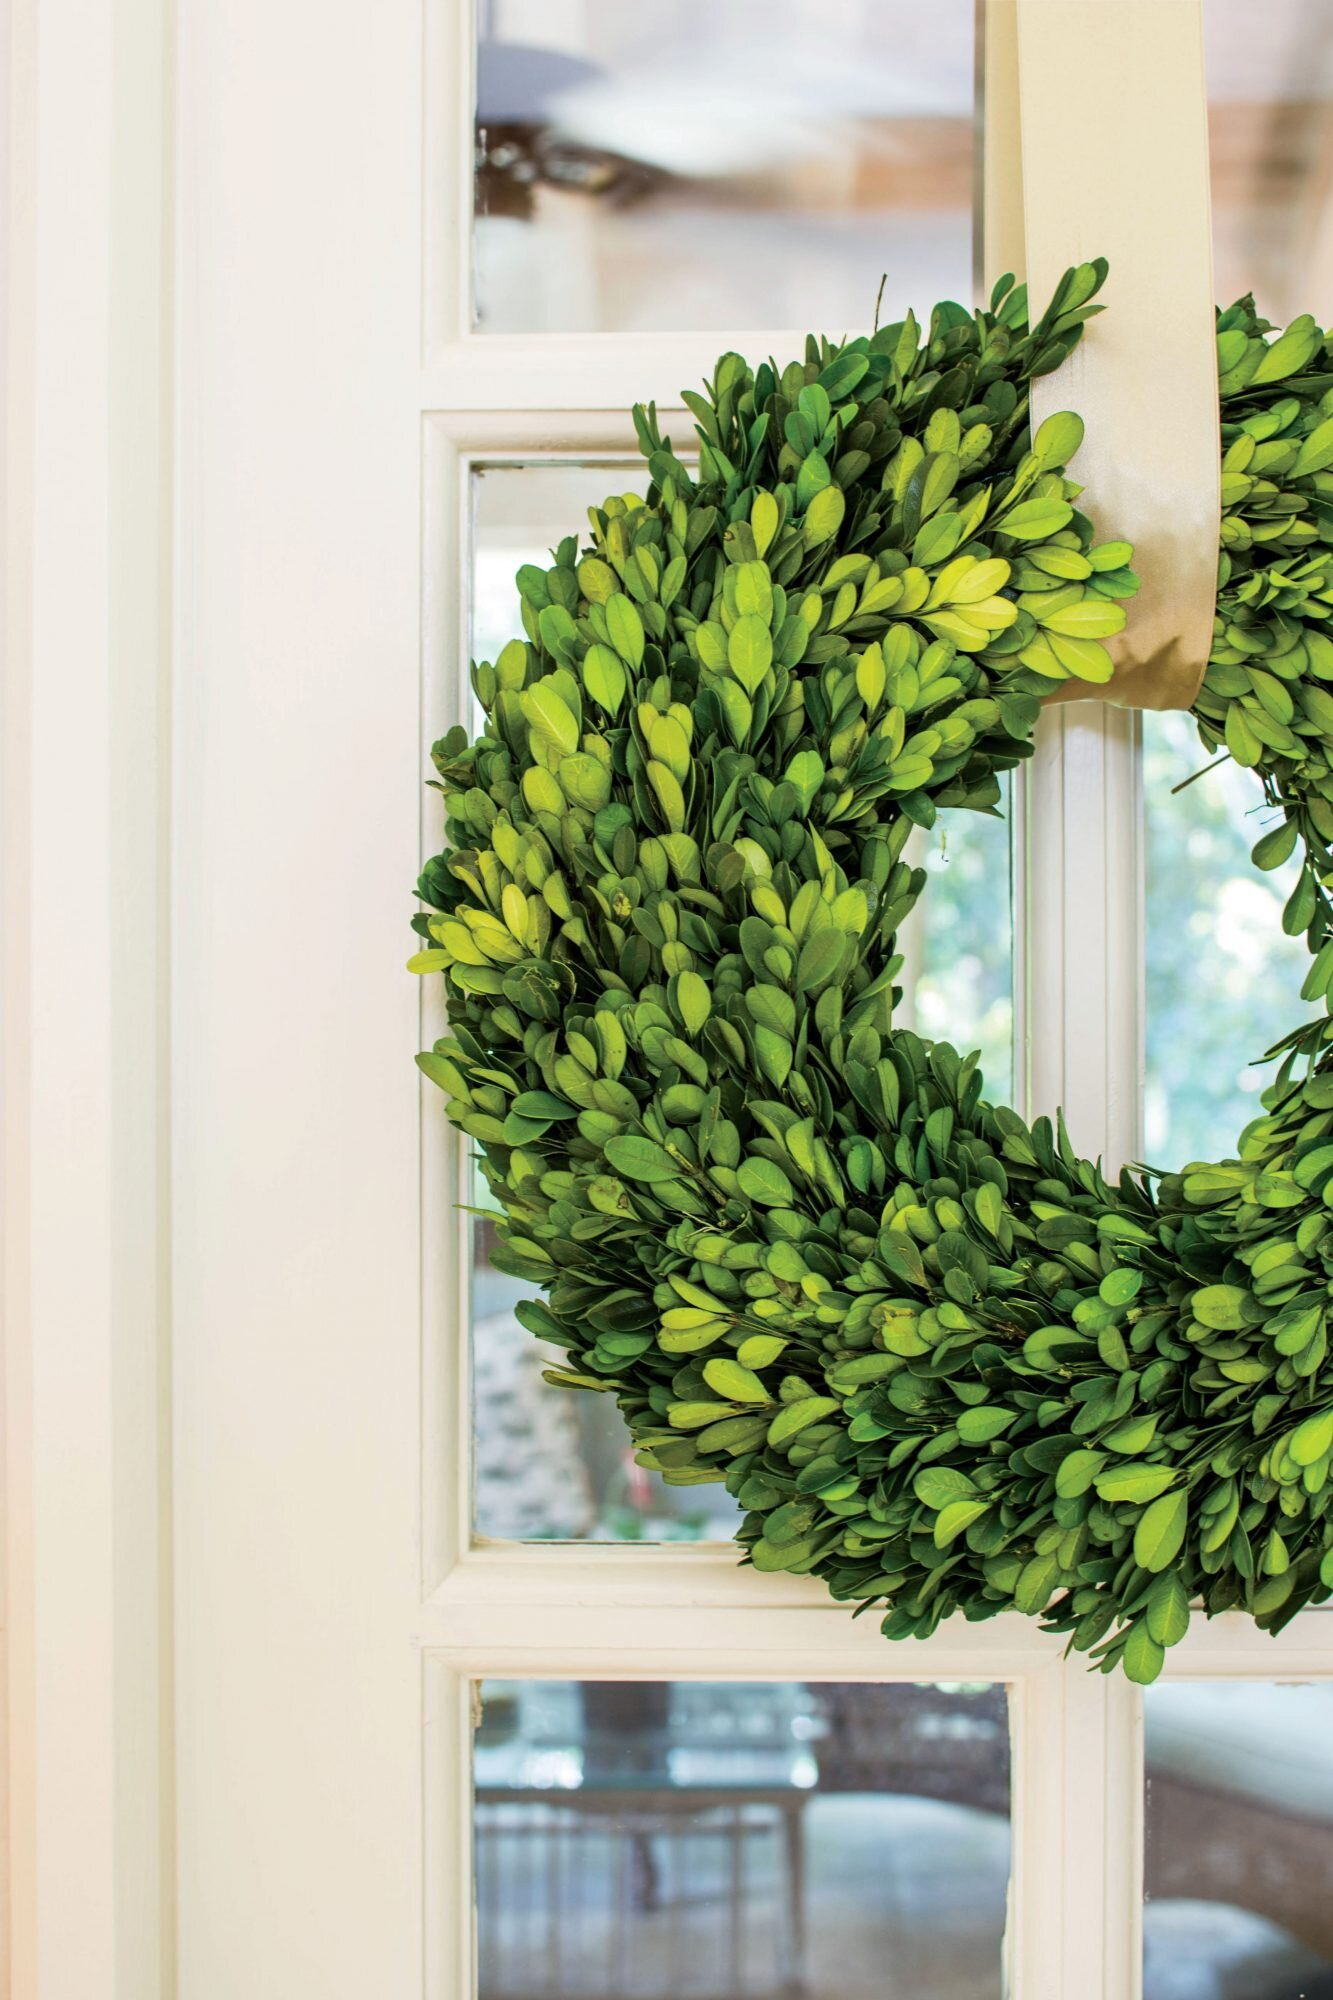 50 Christmas Wreath Ideas For Windows Doors And More